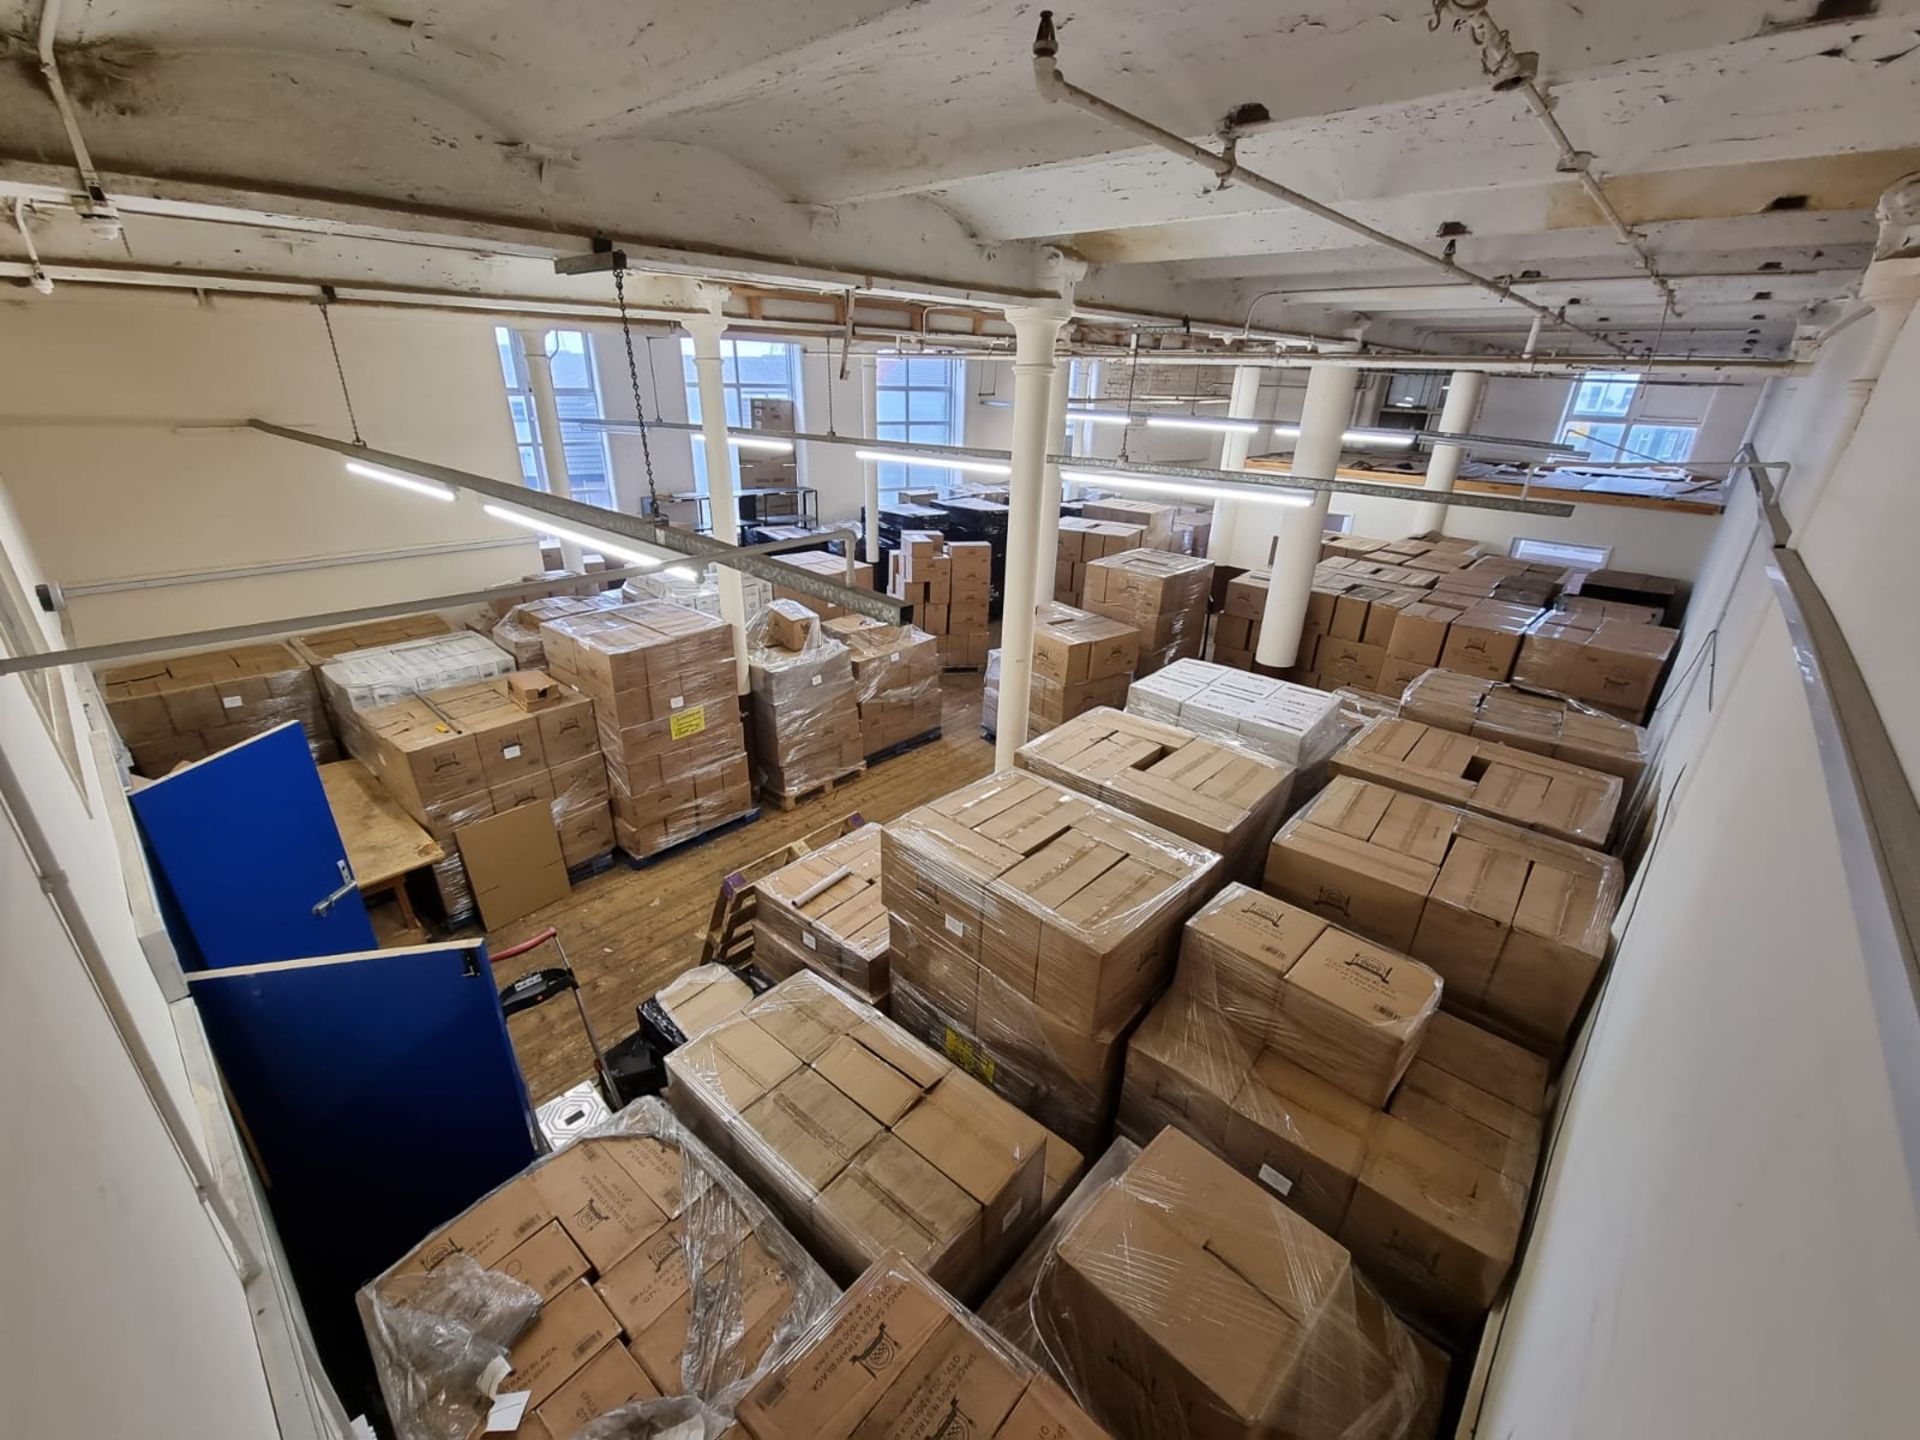 22 x Pallets of Disposable Catering Items | See description for more details - Image 18 of 18